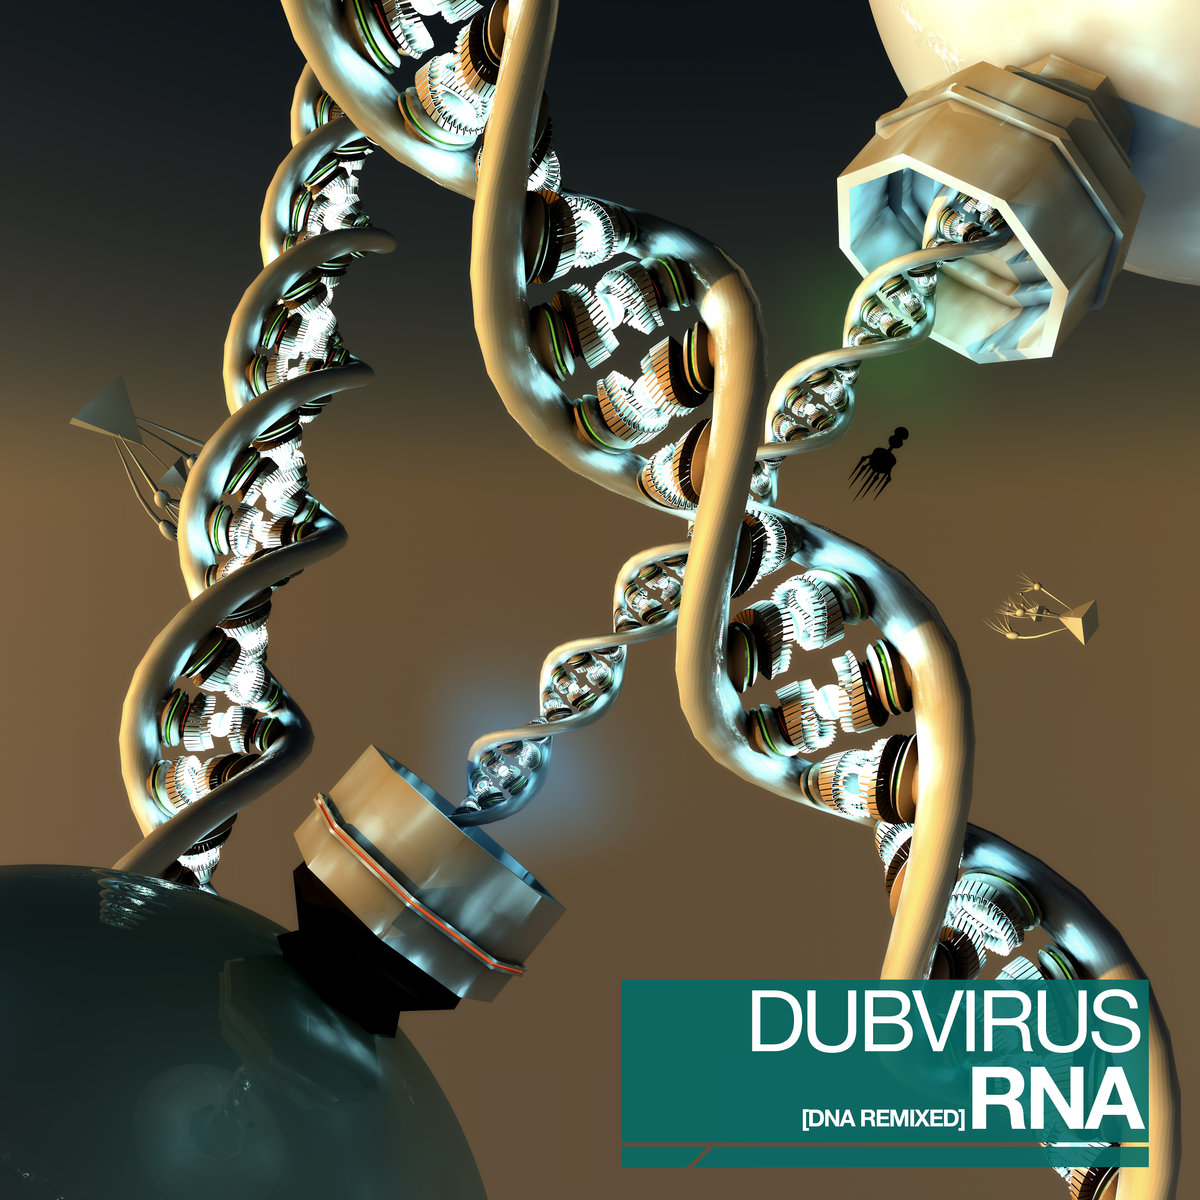 Dubvirus - Source (Root Mass Remix) @ 'RNA (DNA Remixed)' album (bass, dubvirus)